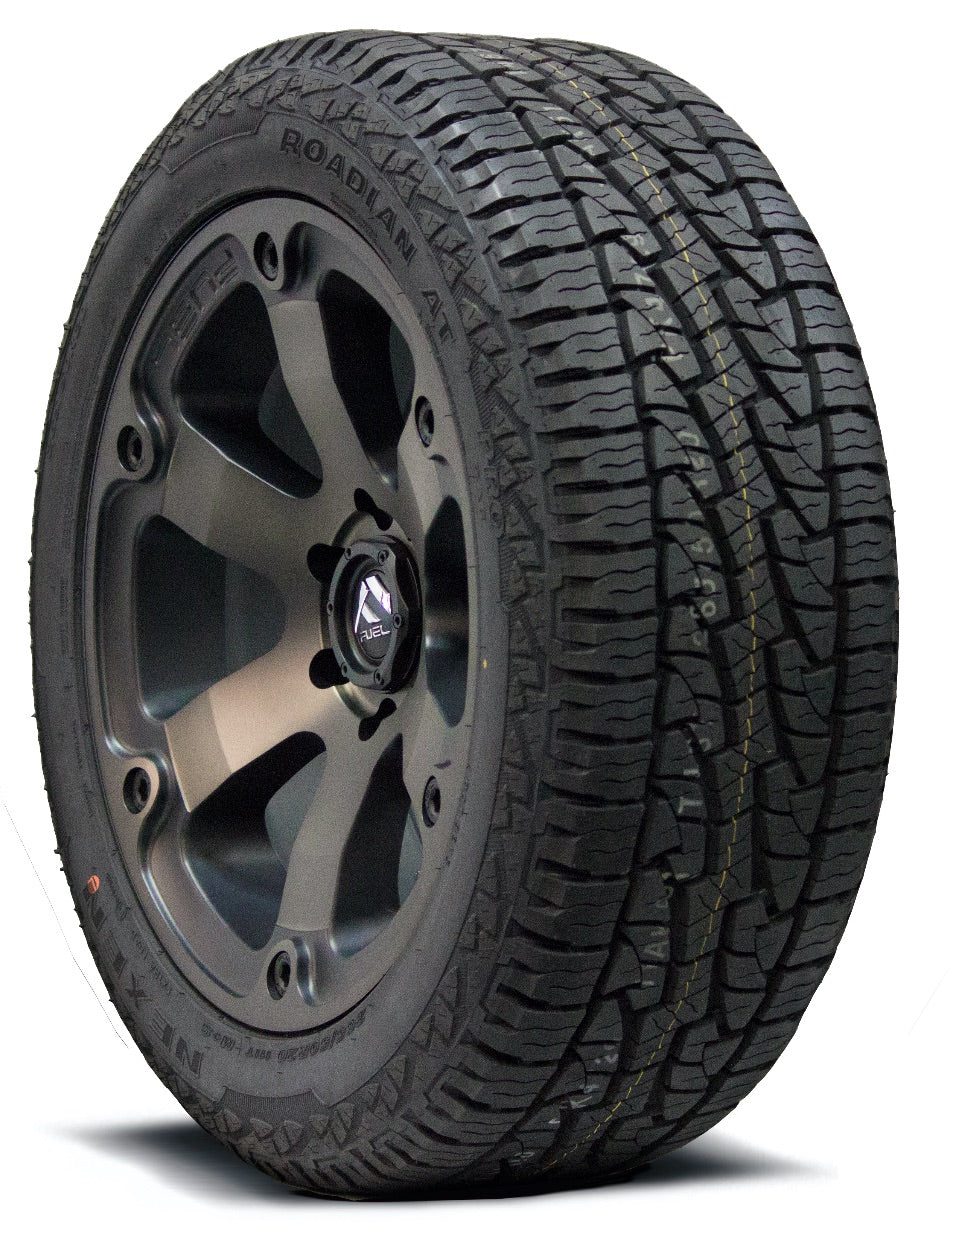 245/65R17 NEXEN ROADIAN AT PRO RA8 | BLACK LTR 111S